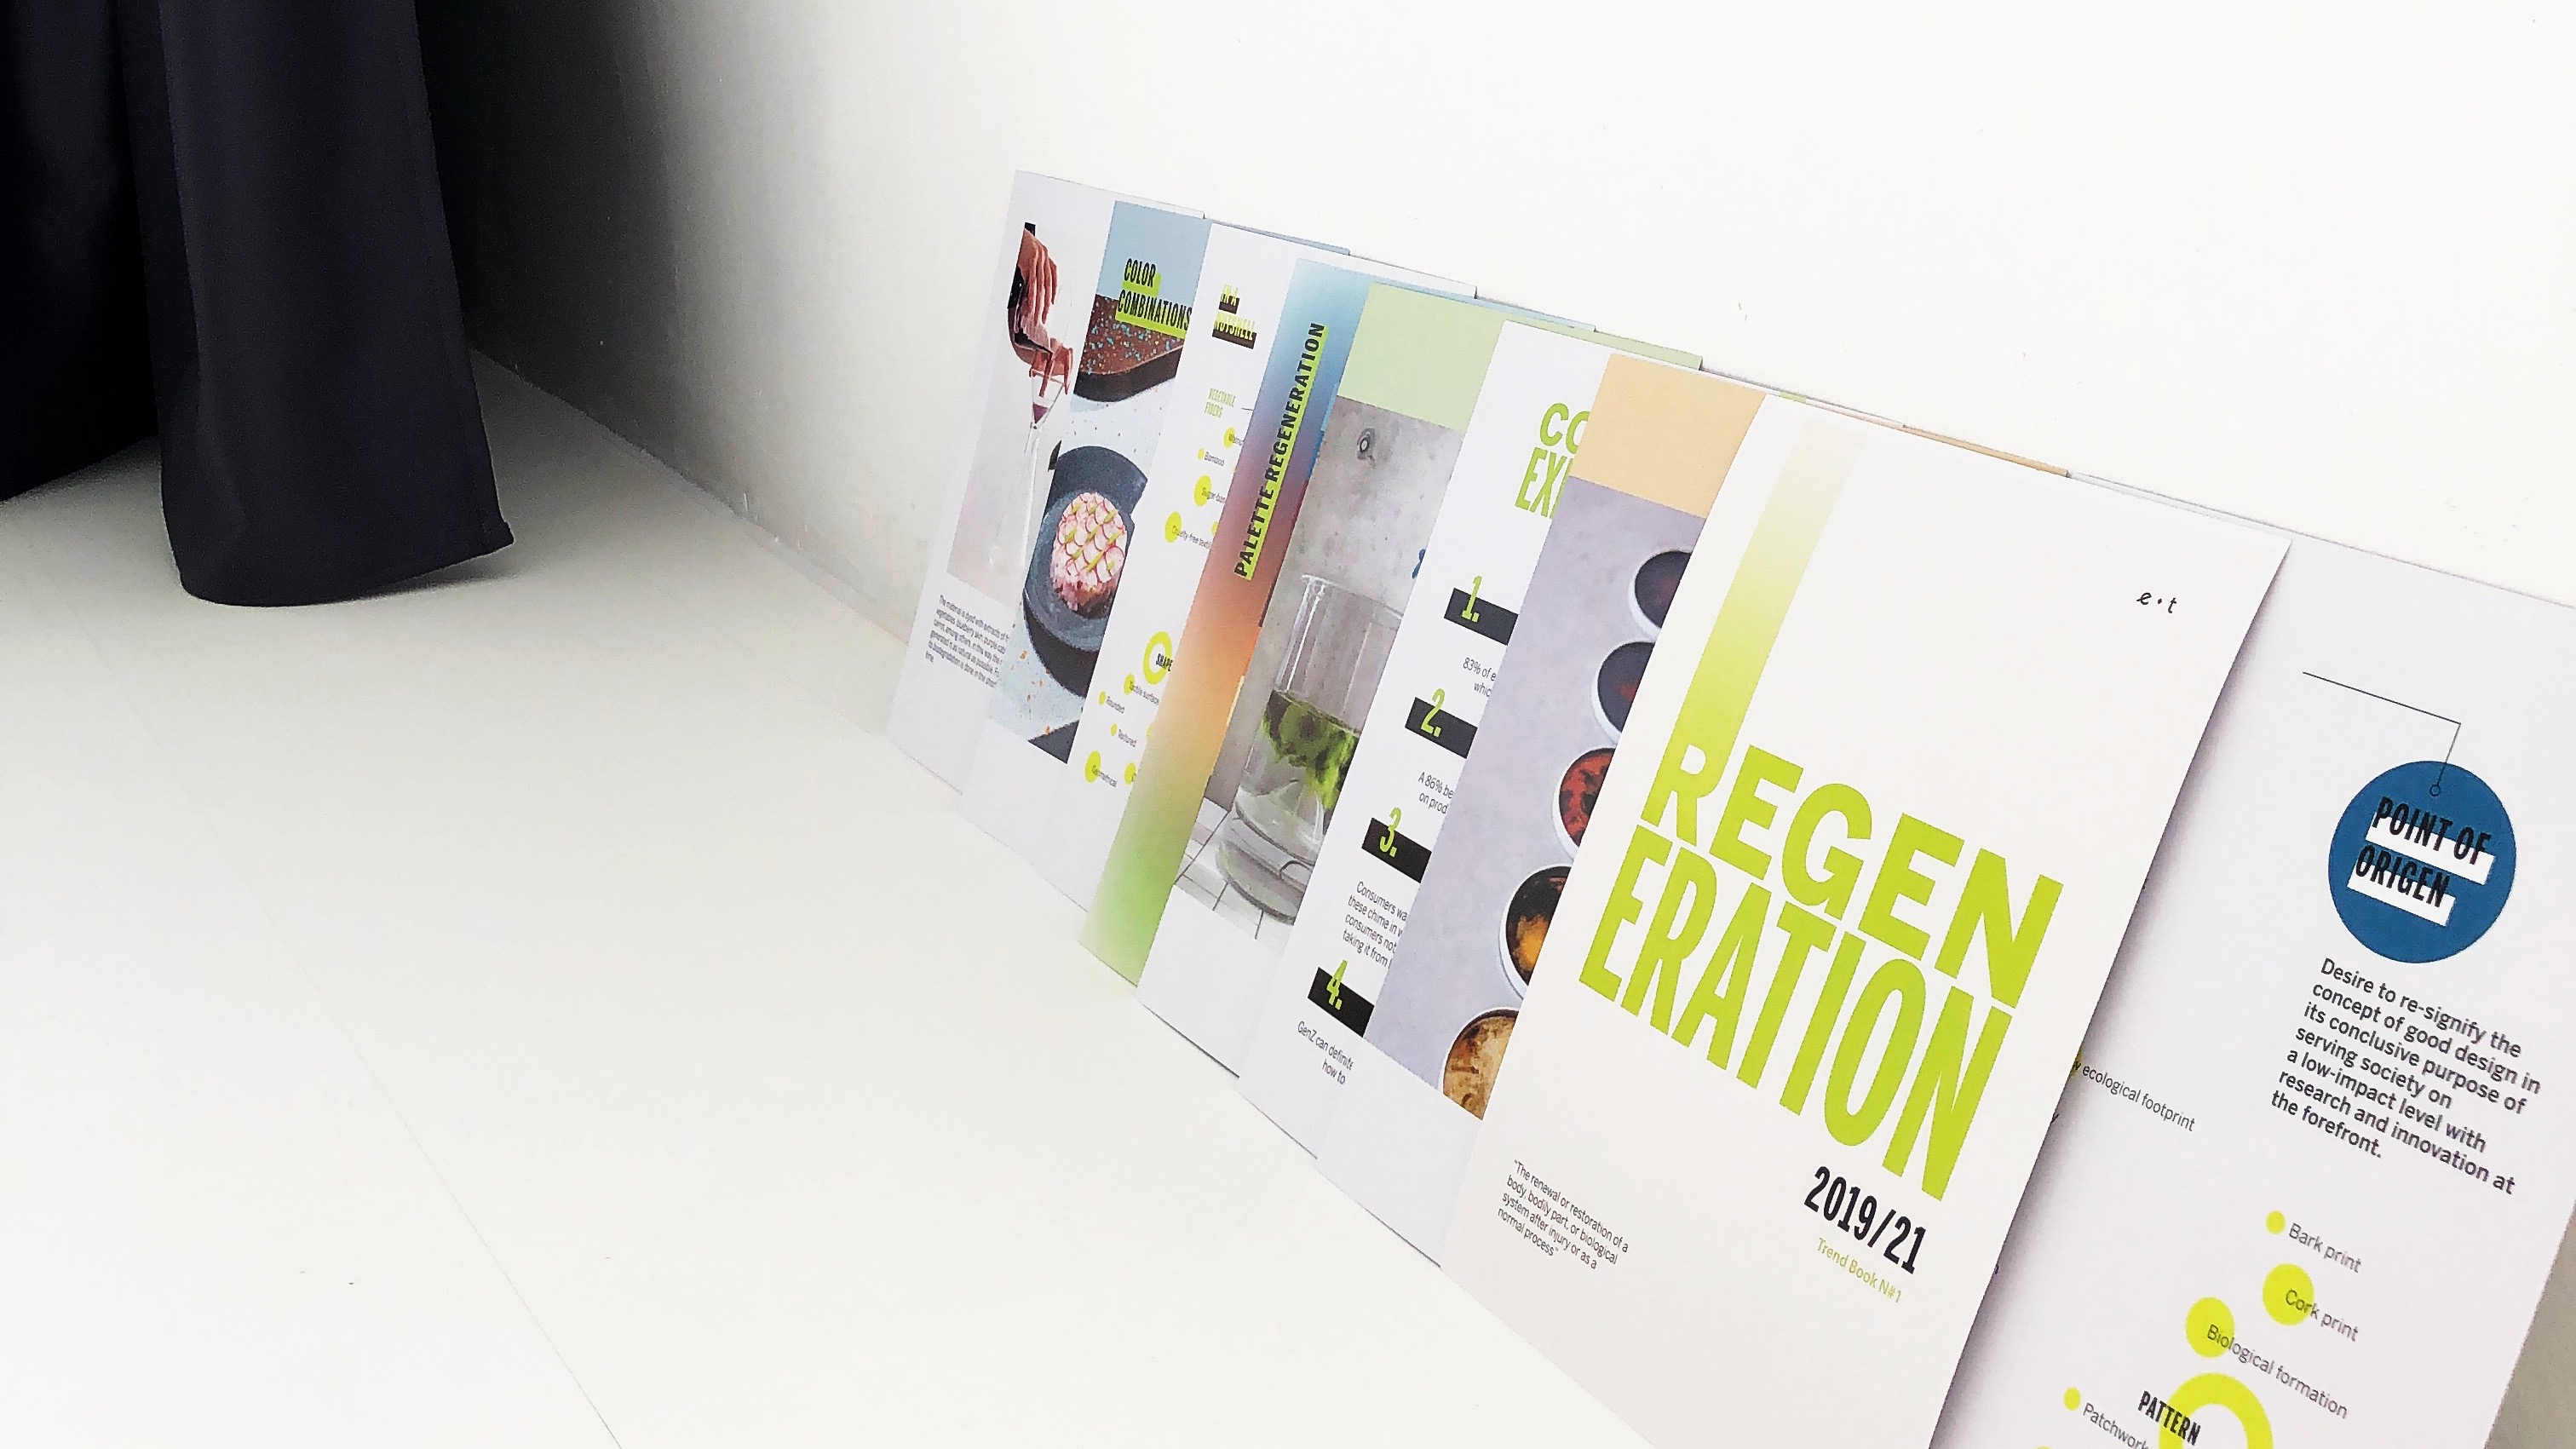 REGENERATION-The Green Trend Report by ©Eclectic Trends